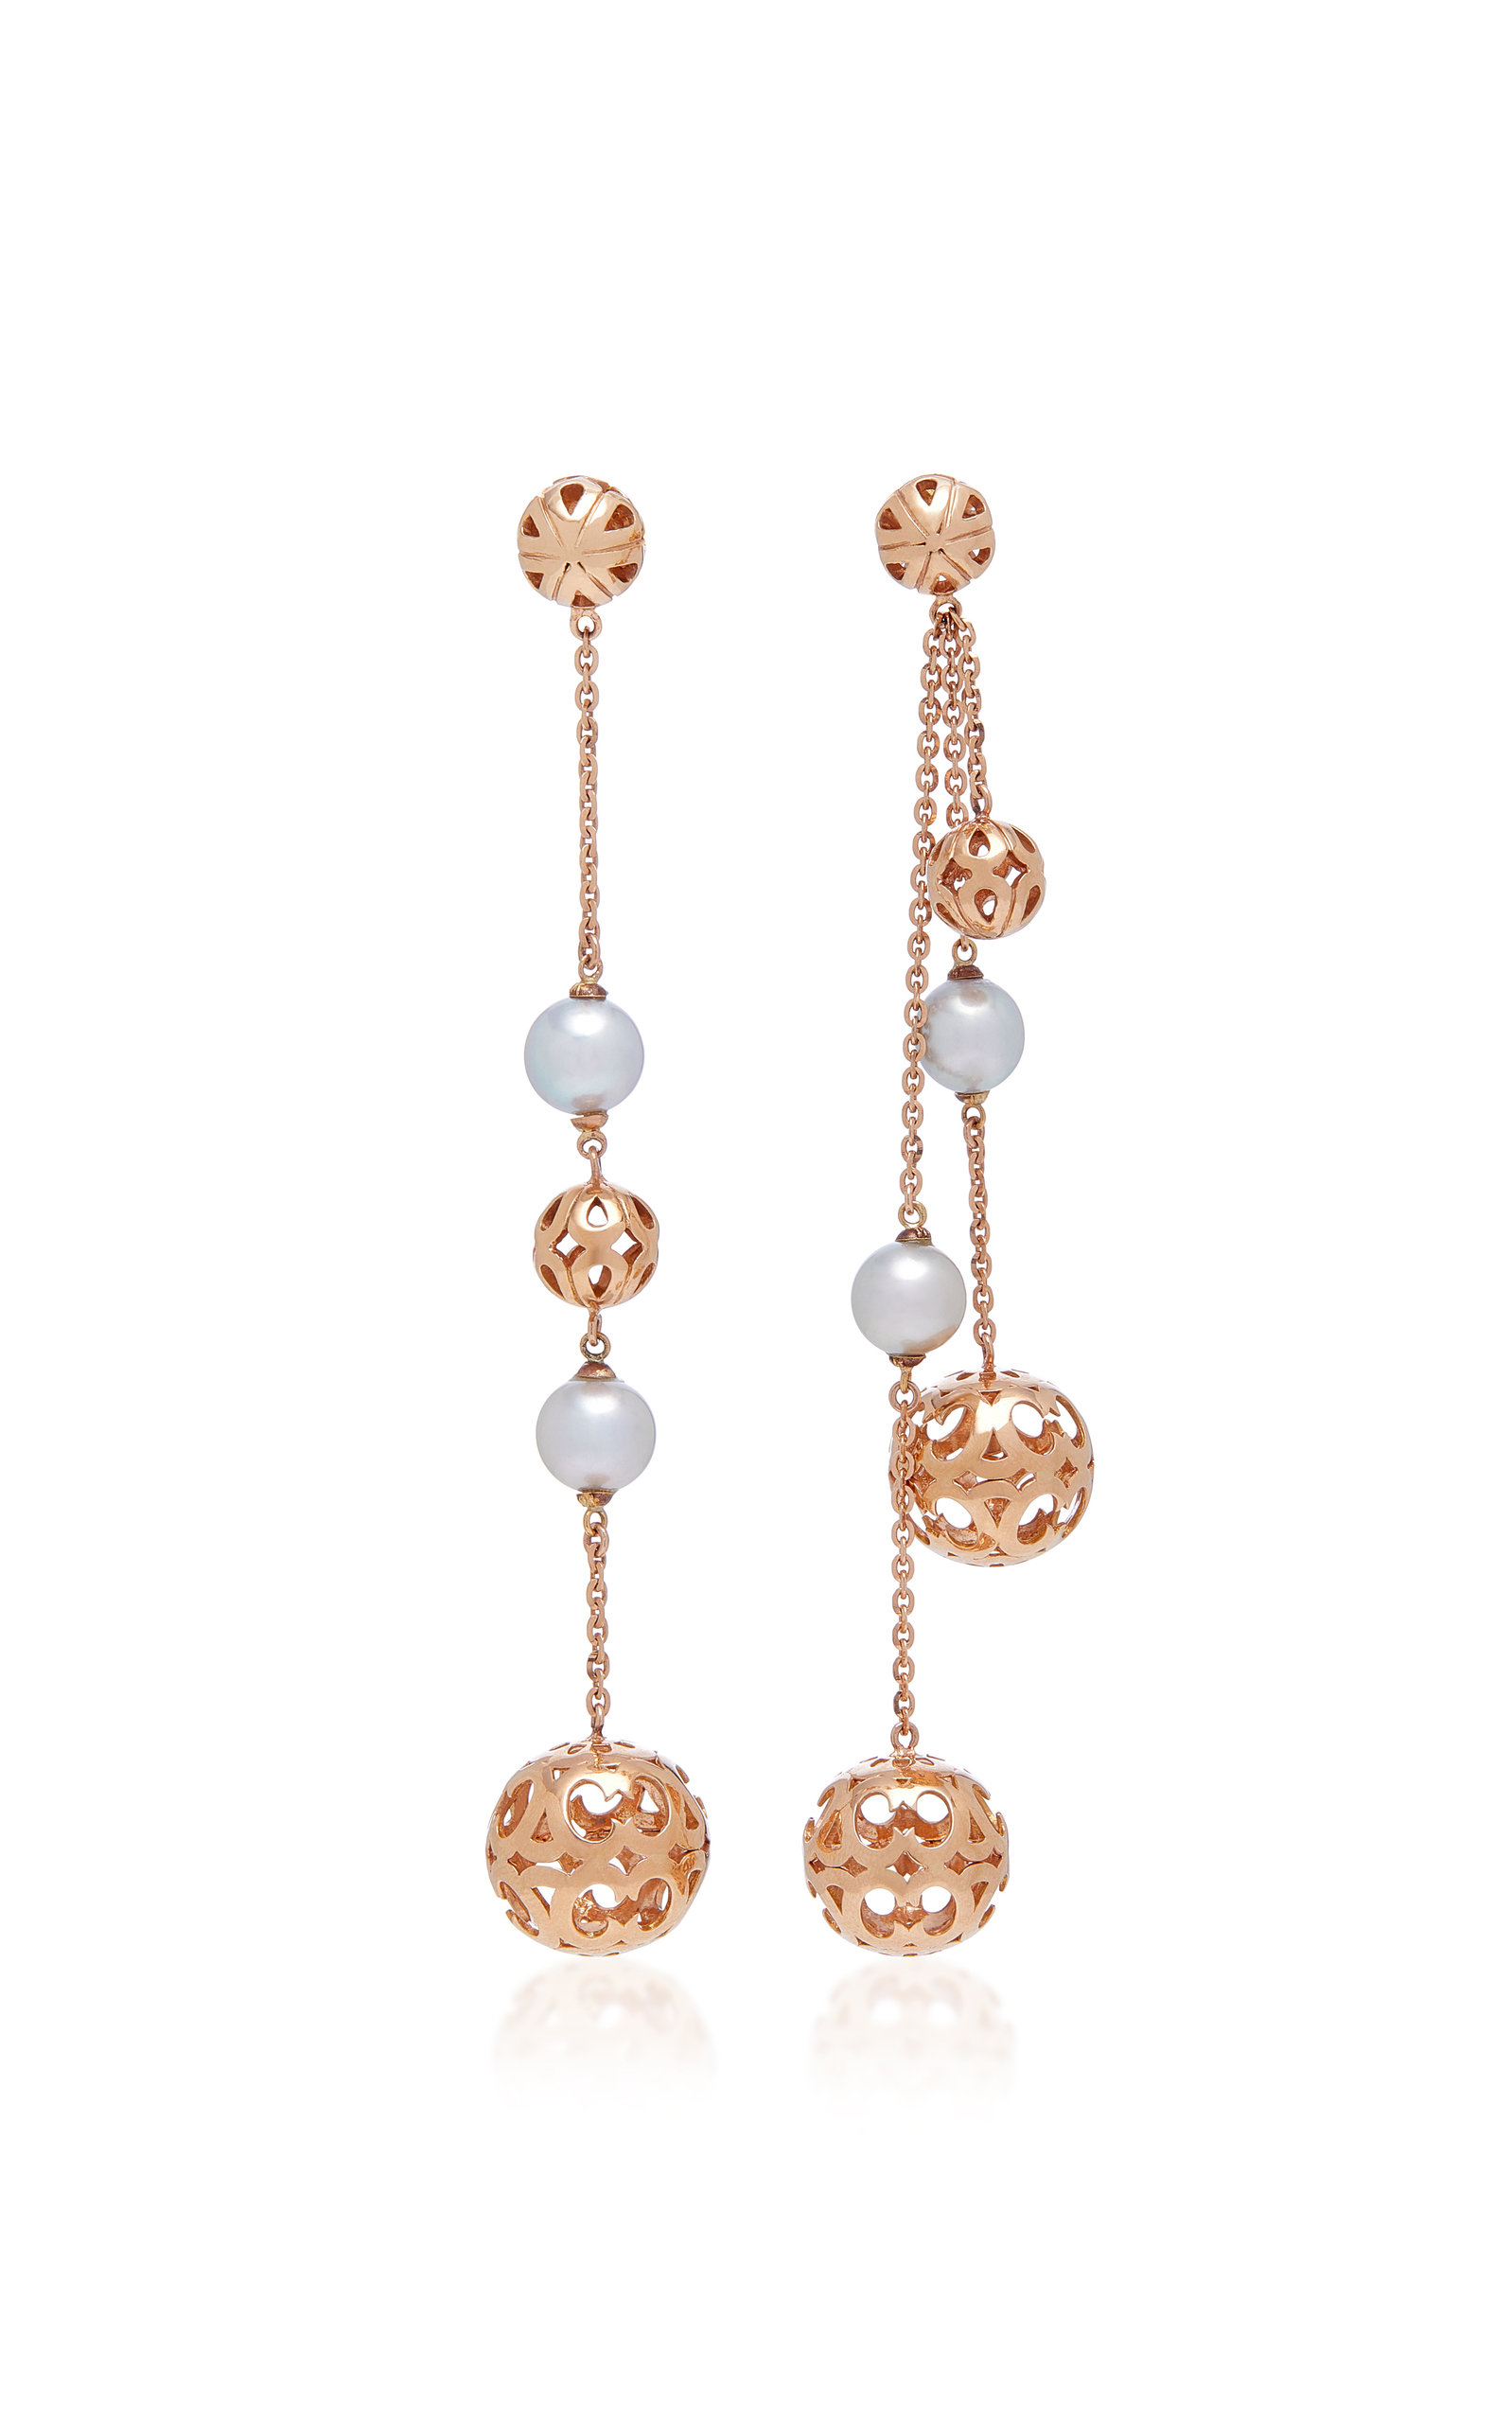 COLETTE JEWELRY Motif Mismatched 18K Rose Gold And Japanese Pearl Drop Earrings in Pink